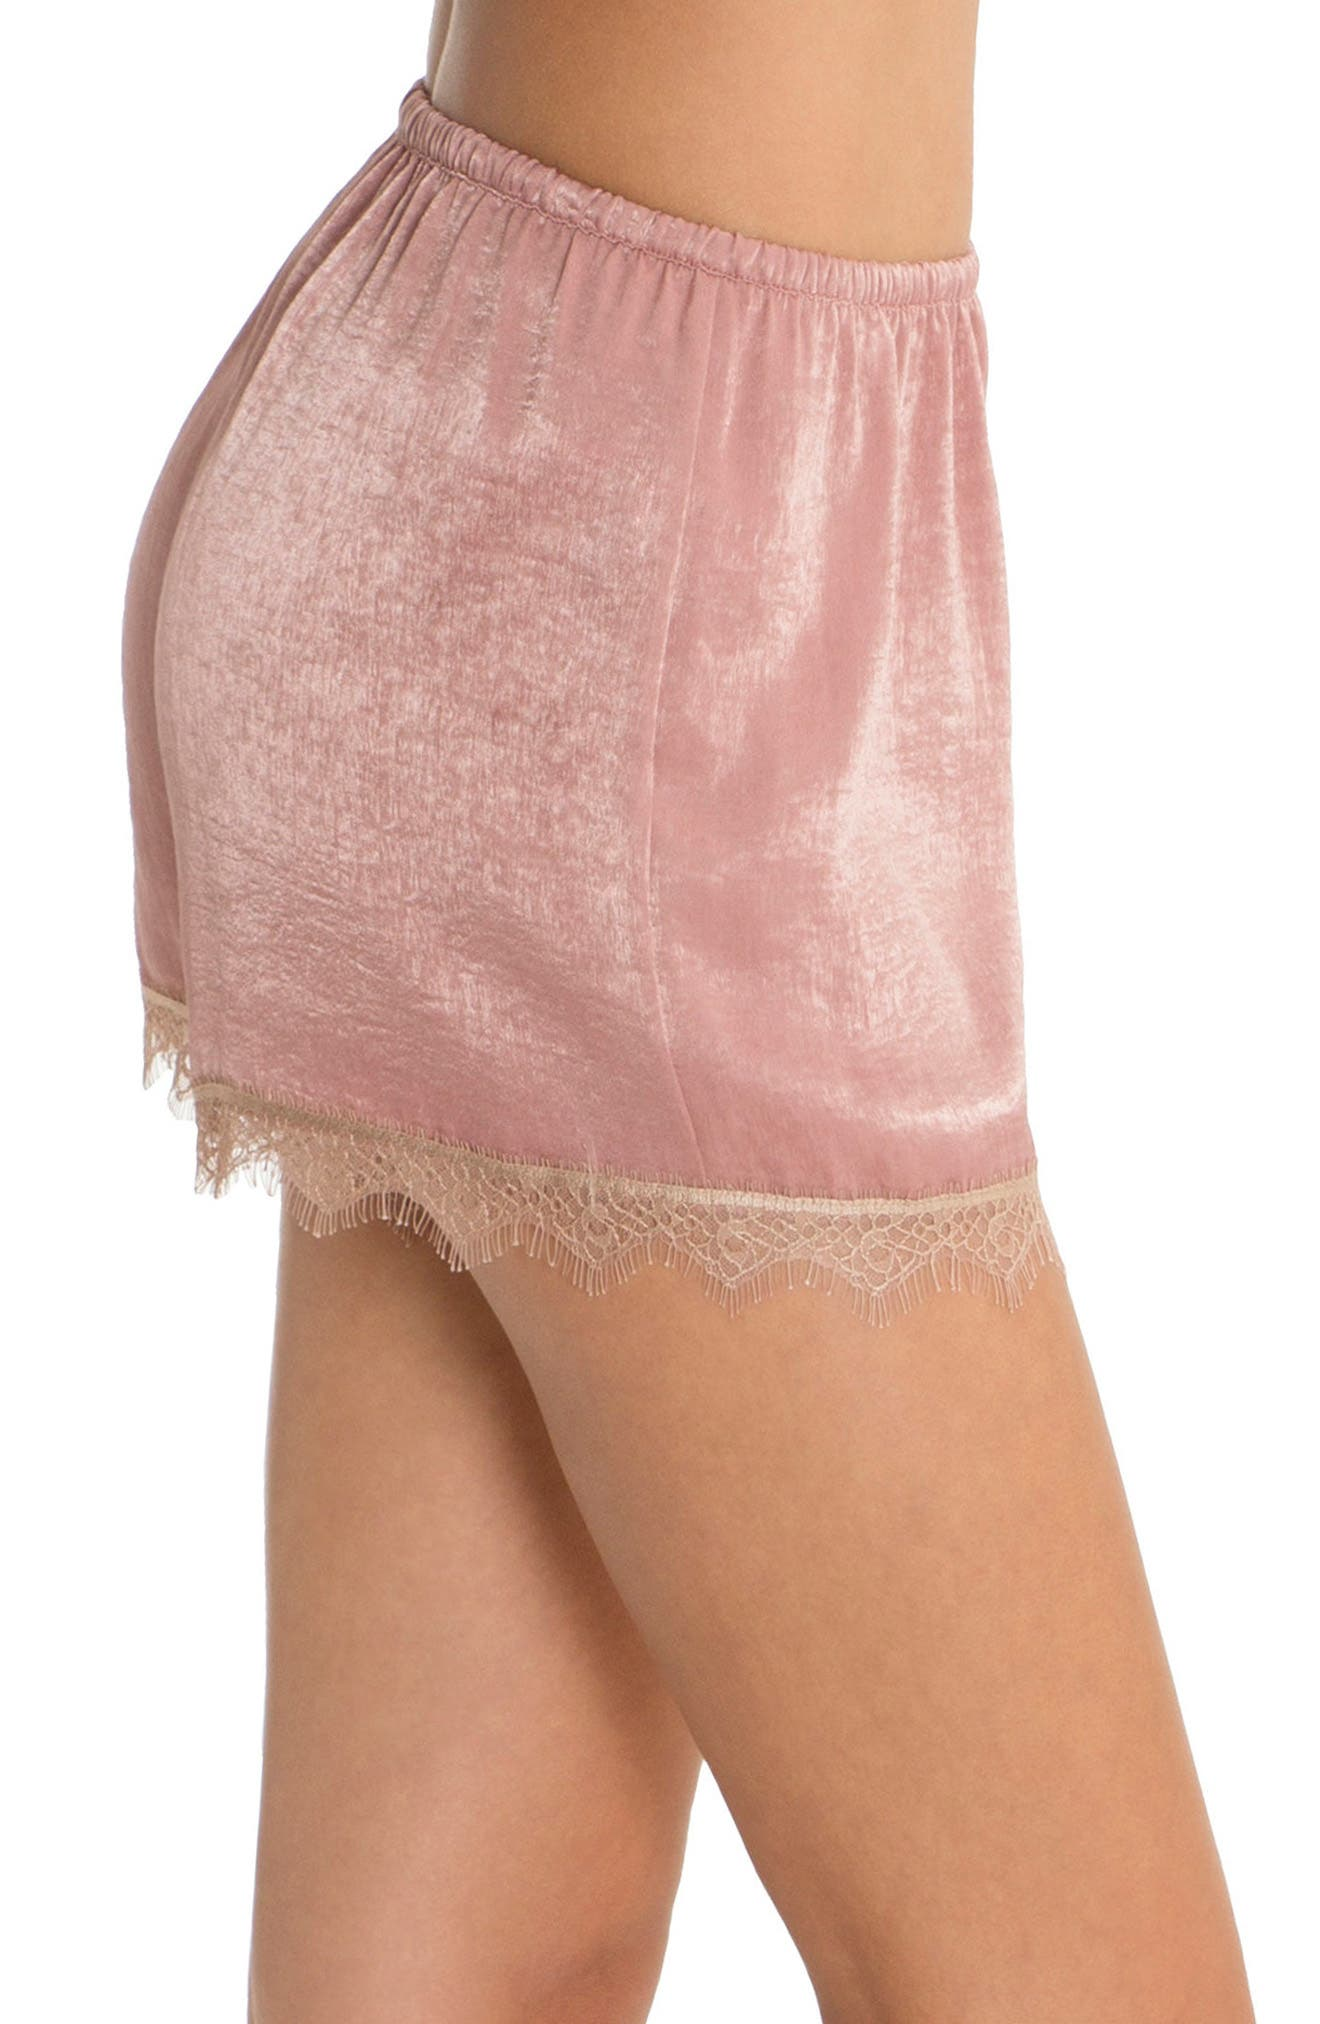 Satin Pajama Shorts,                             Alternate thumbnail 3, color,                             Rose